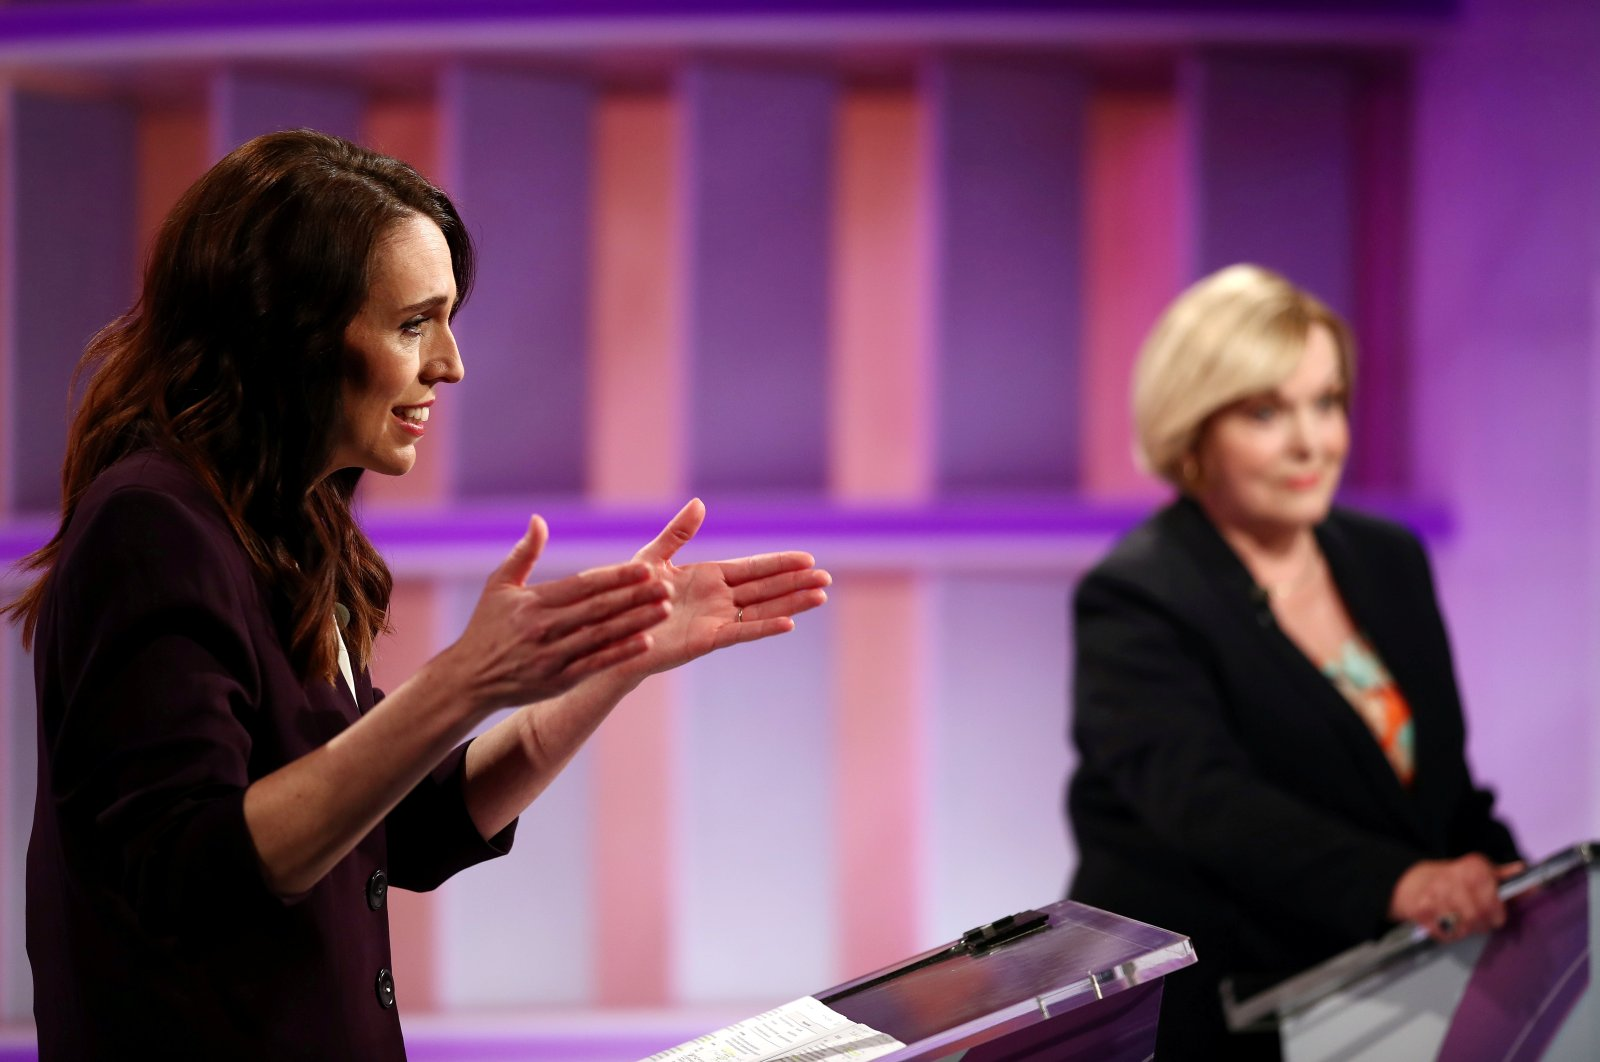 New Zealand Prime Minister Jacinda Ardern (L) and National leader Judith Collins participate in a televised debate at TVNZ in Auckland, New Zealand, Sept. 22, 2020. (Reuters Photo)